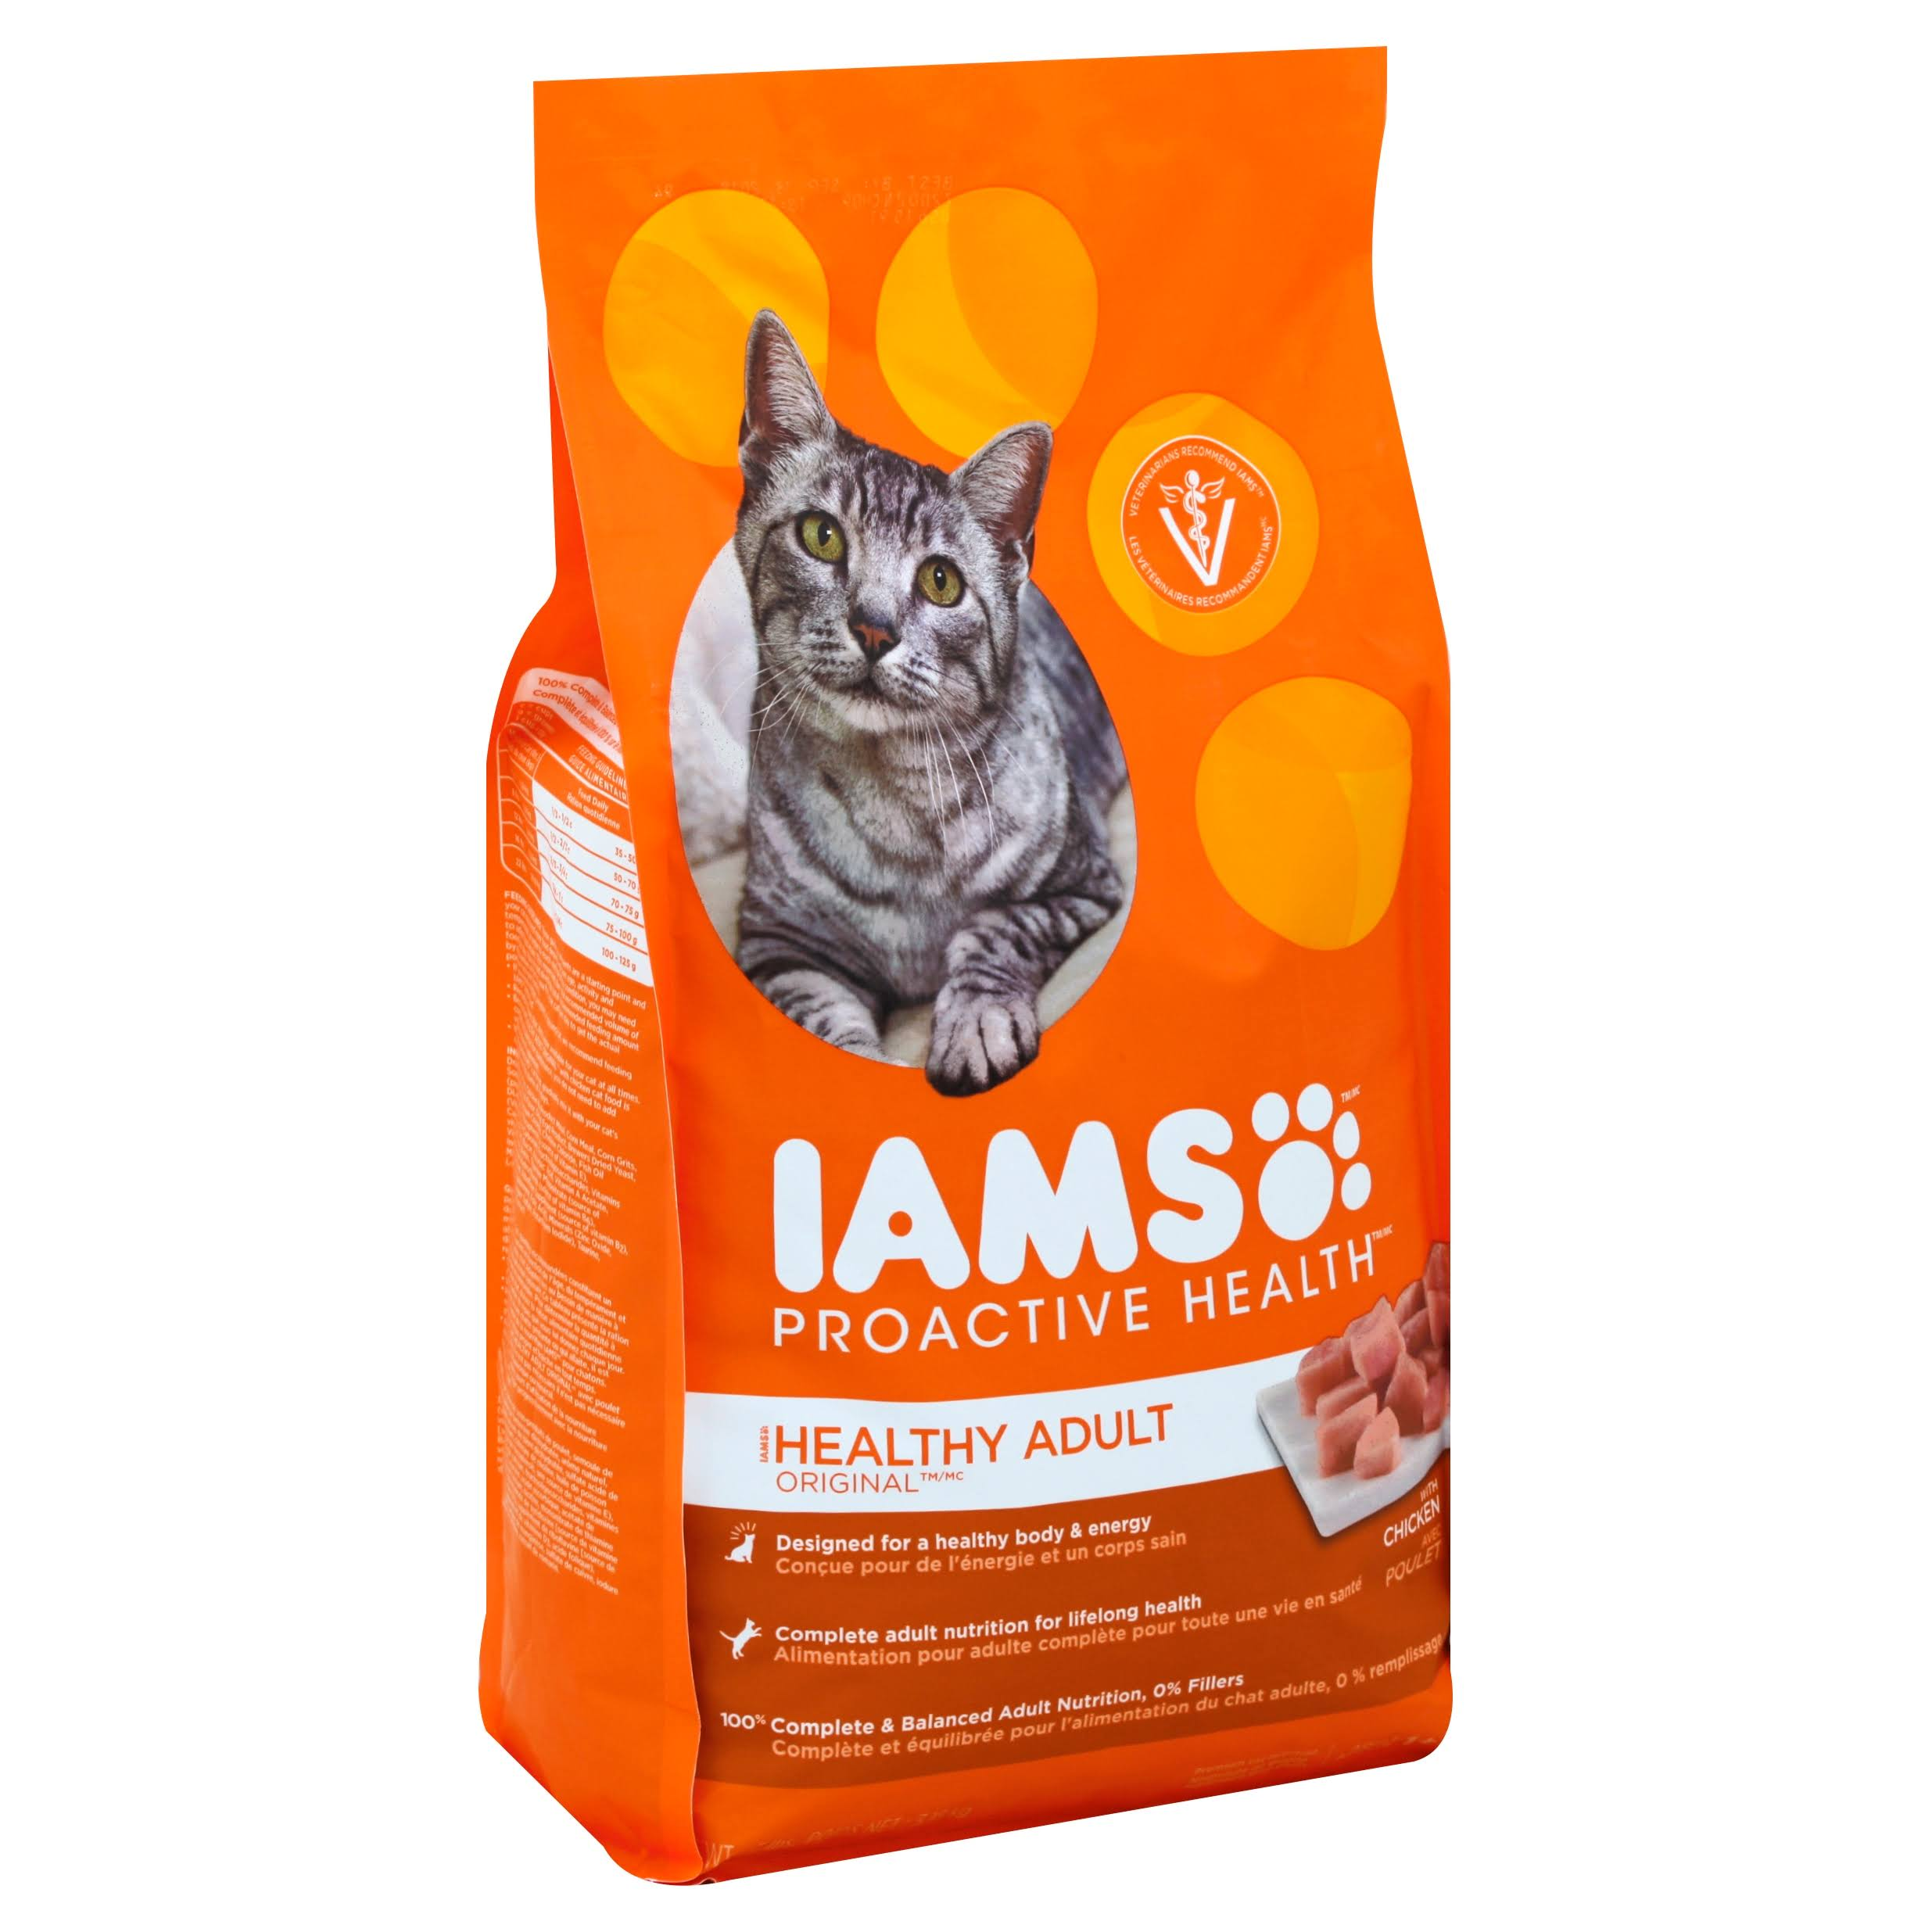 Iams Proactive Health Original Adult Cat Food - 5.7 lbs